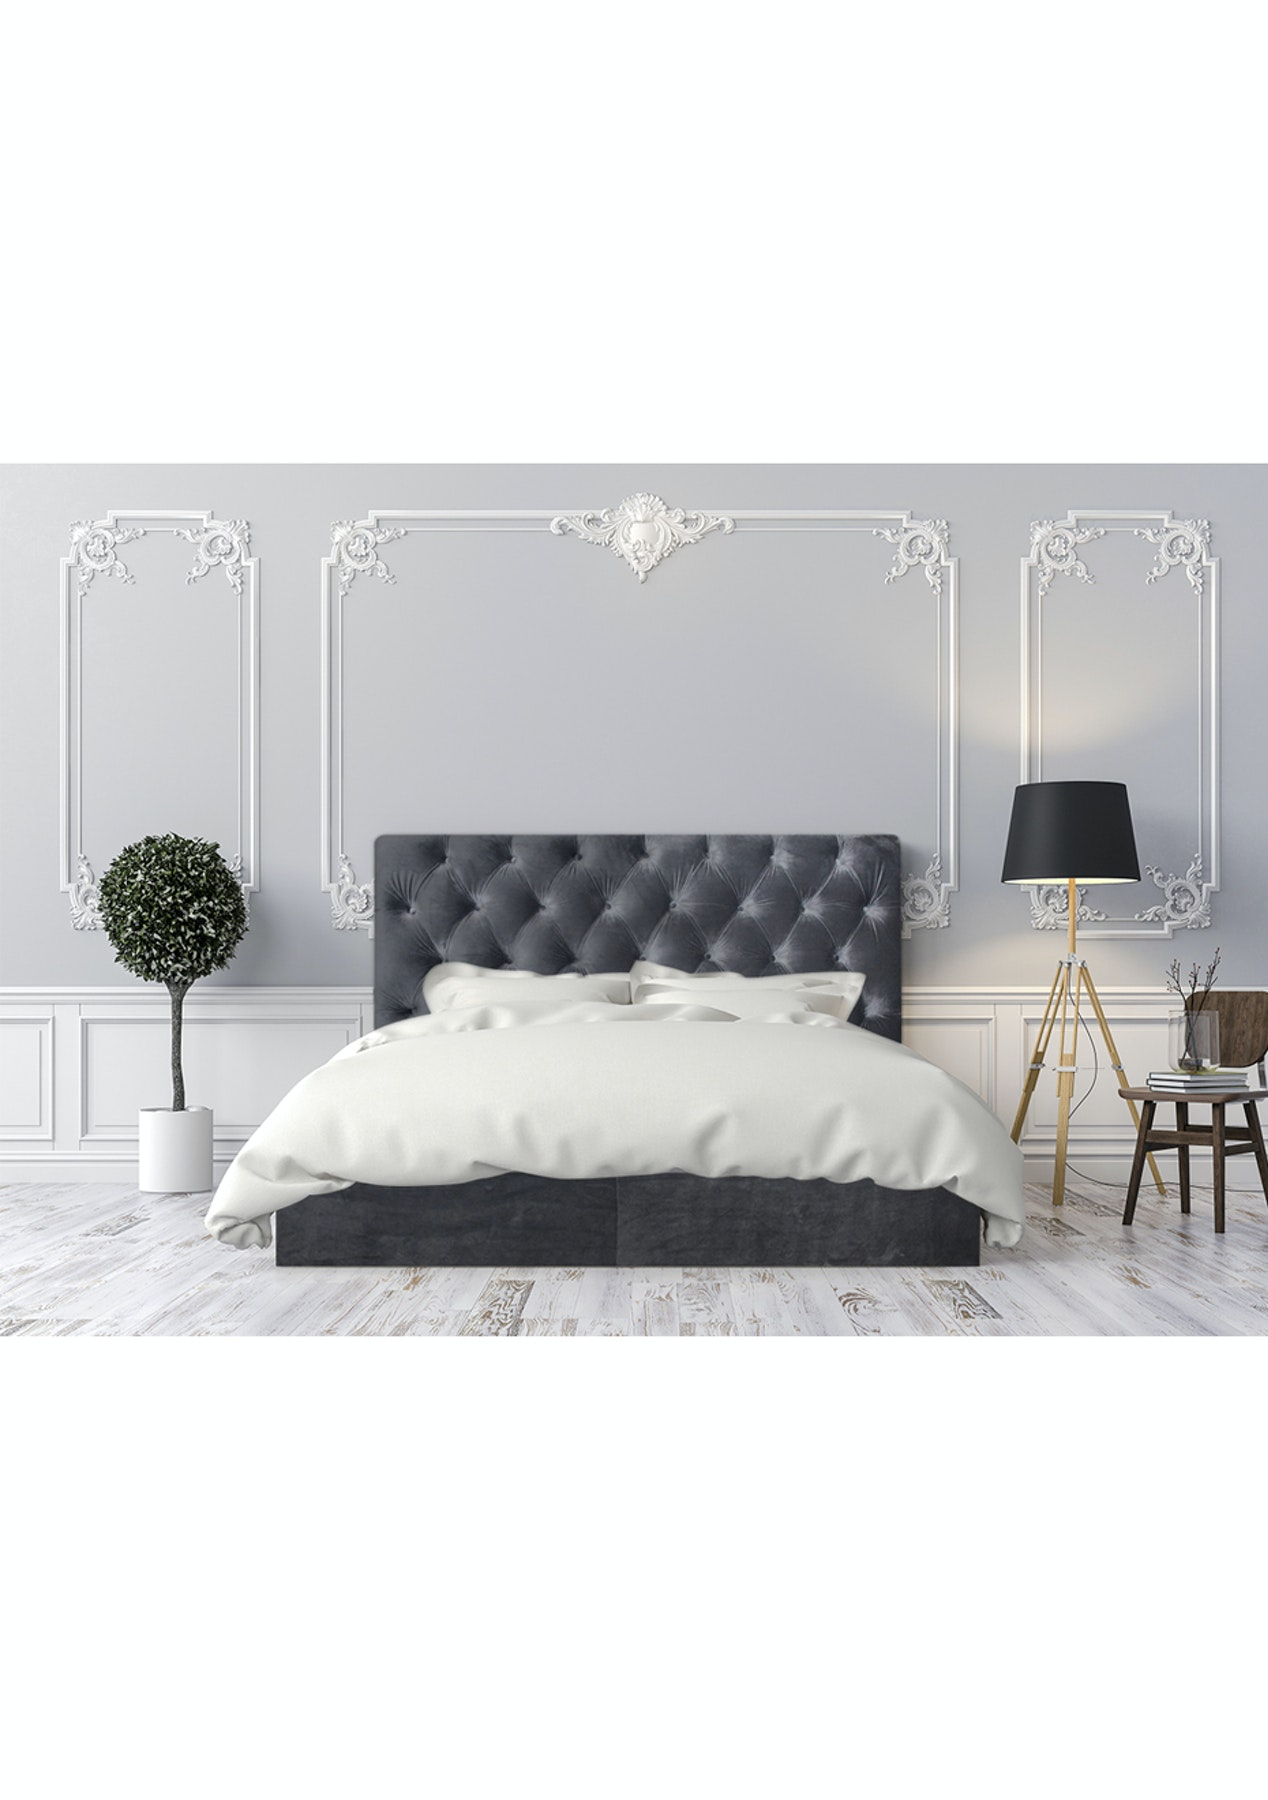 maple midcentury gothic gallery com for of off unusual home king sale ideas athelred s beds wood headboard design